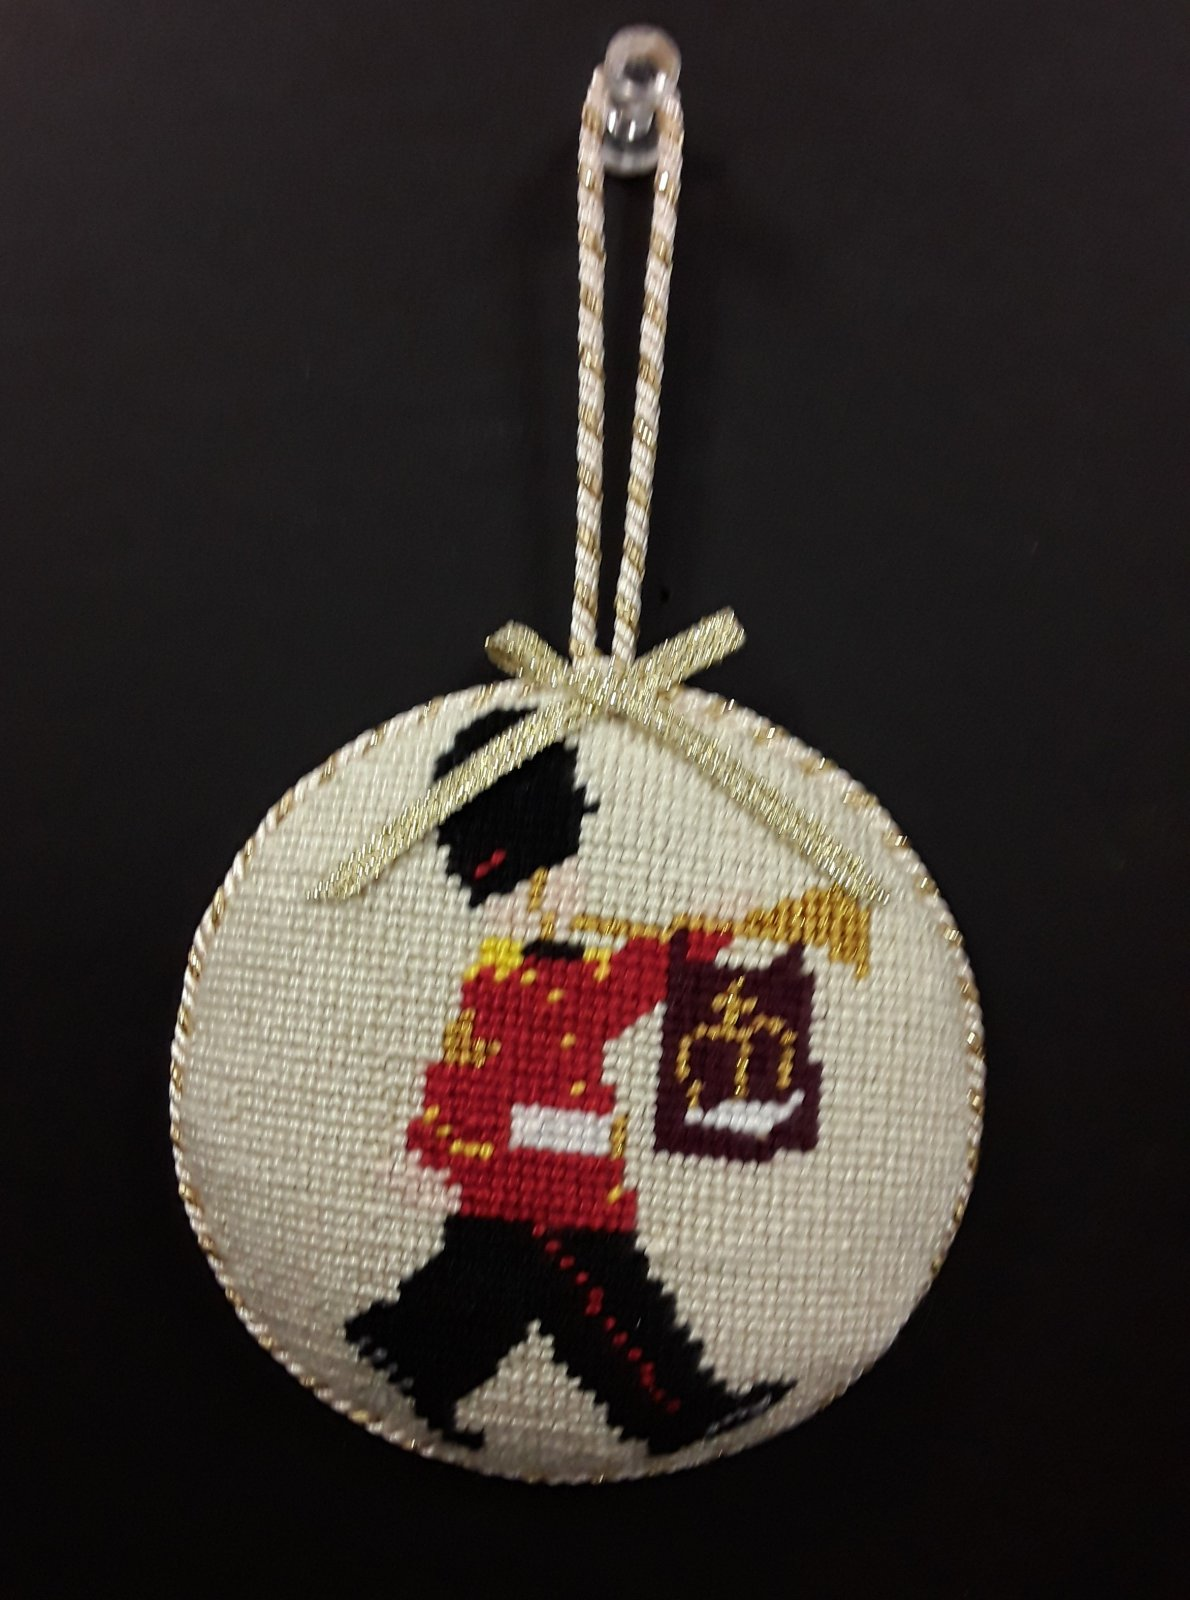 Beefeater w/Horn Ornament - Stitched By Barbara K.